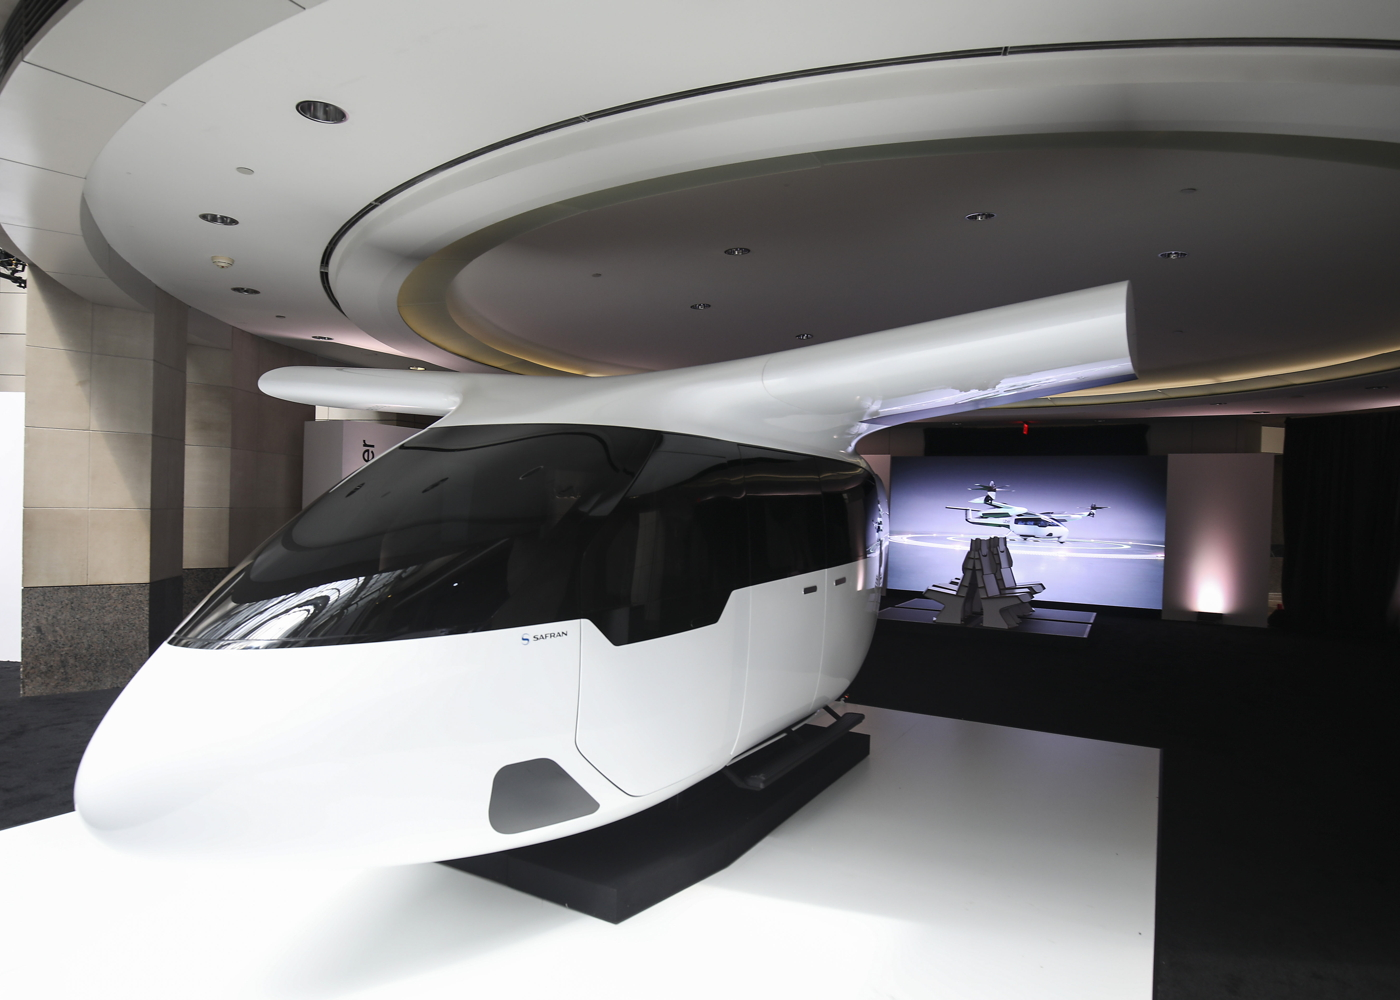 Air taxi cabin by Uber and Safran